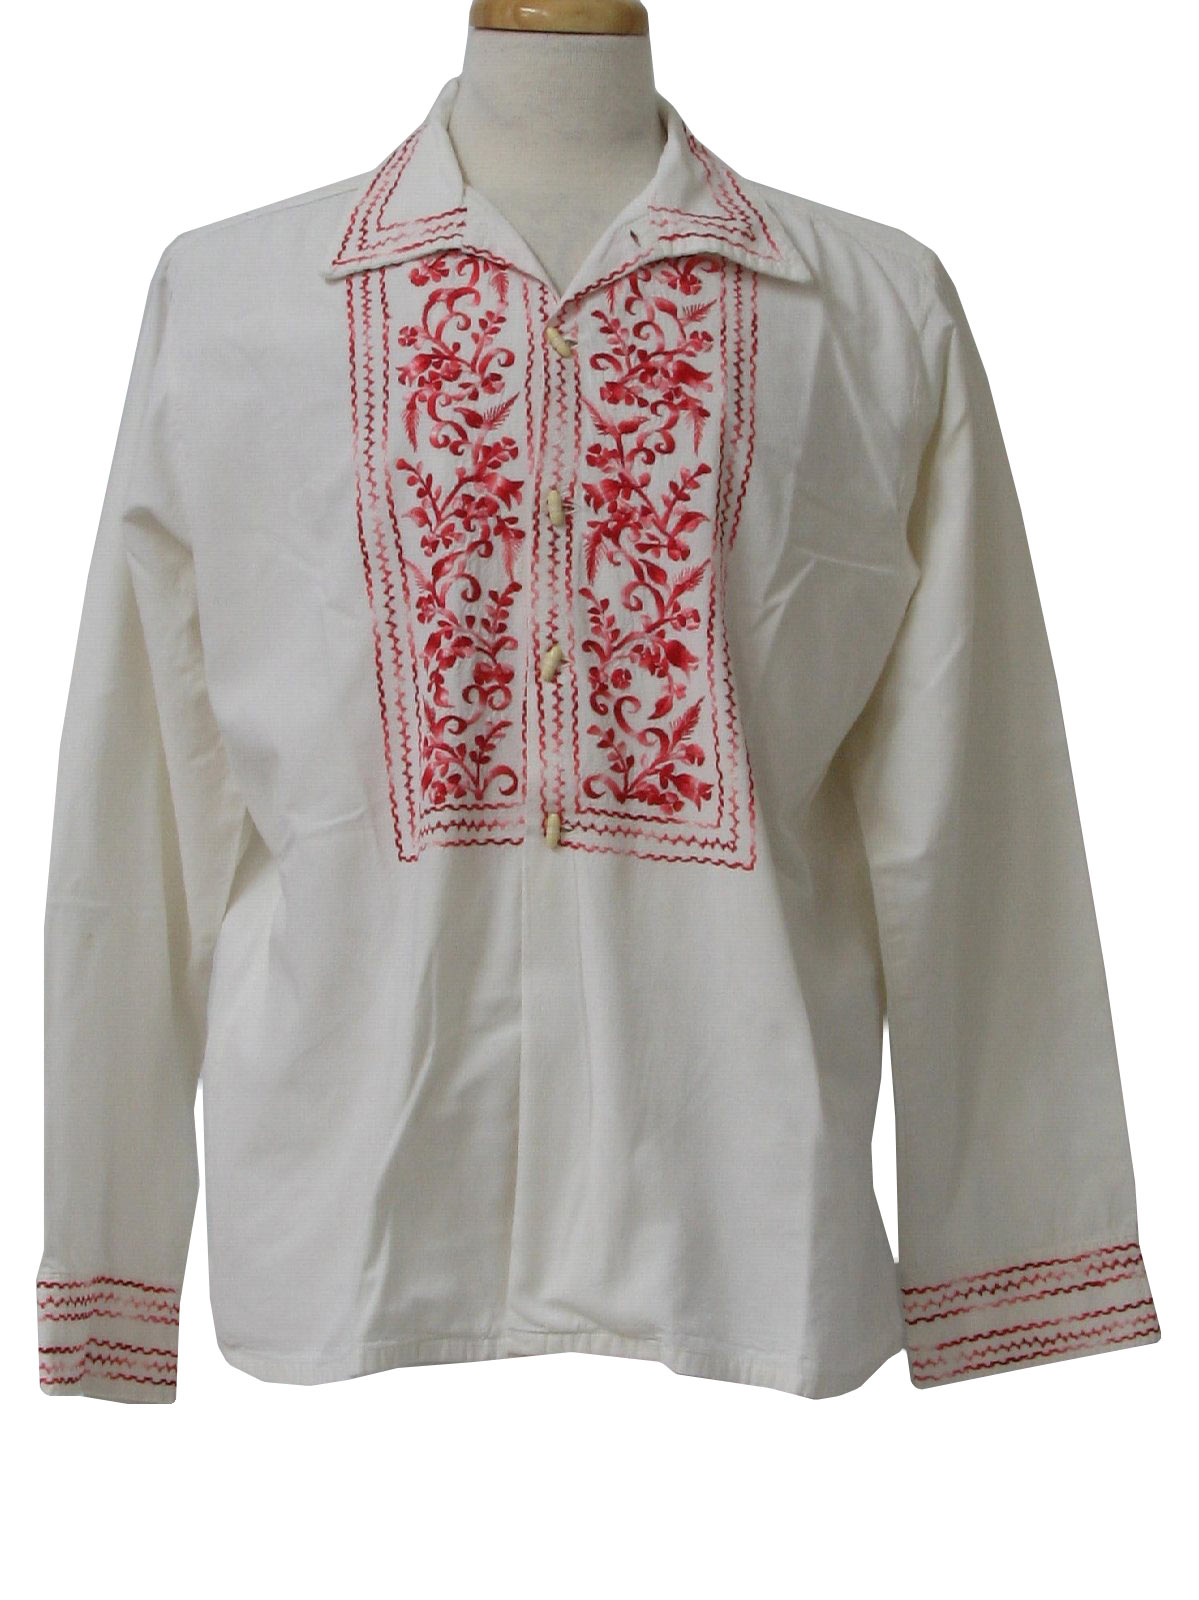 1960's Probably Made in Mexico Mens Embroidered Hippie Shirt